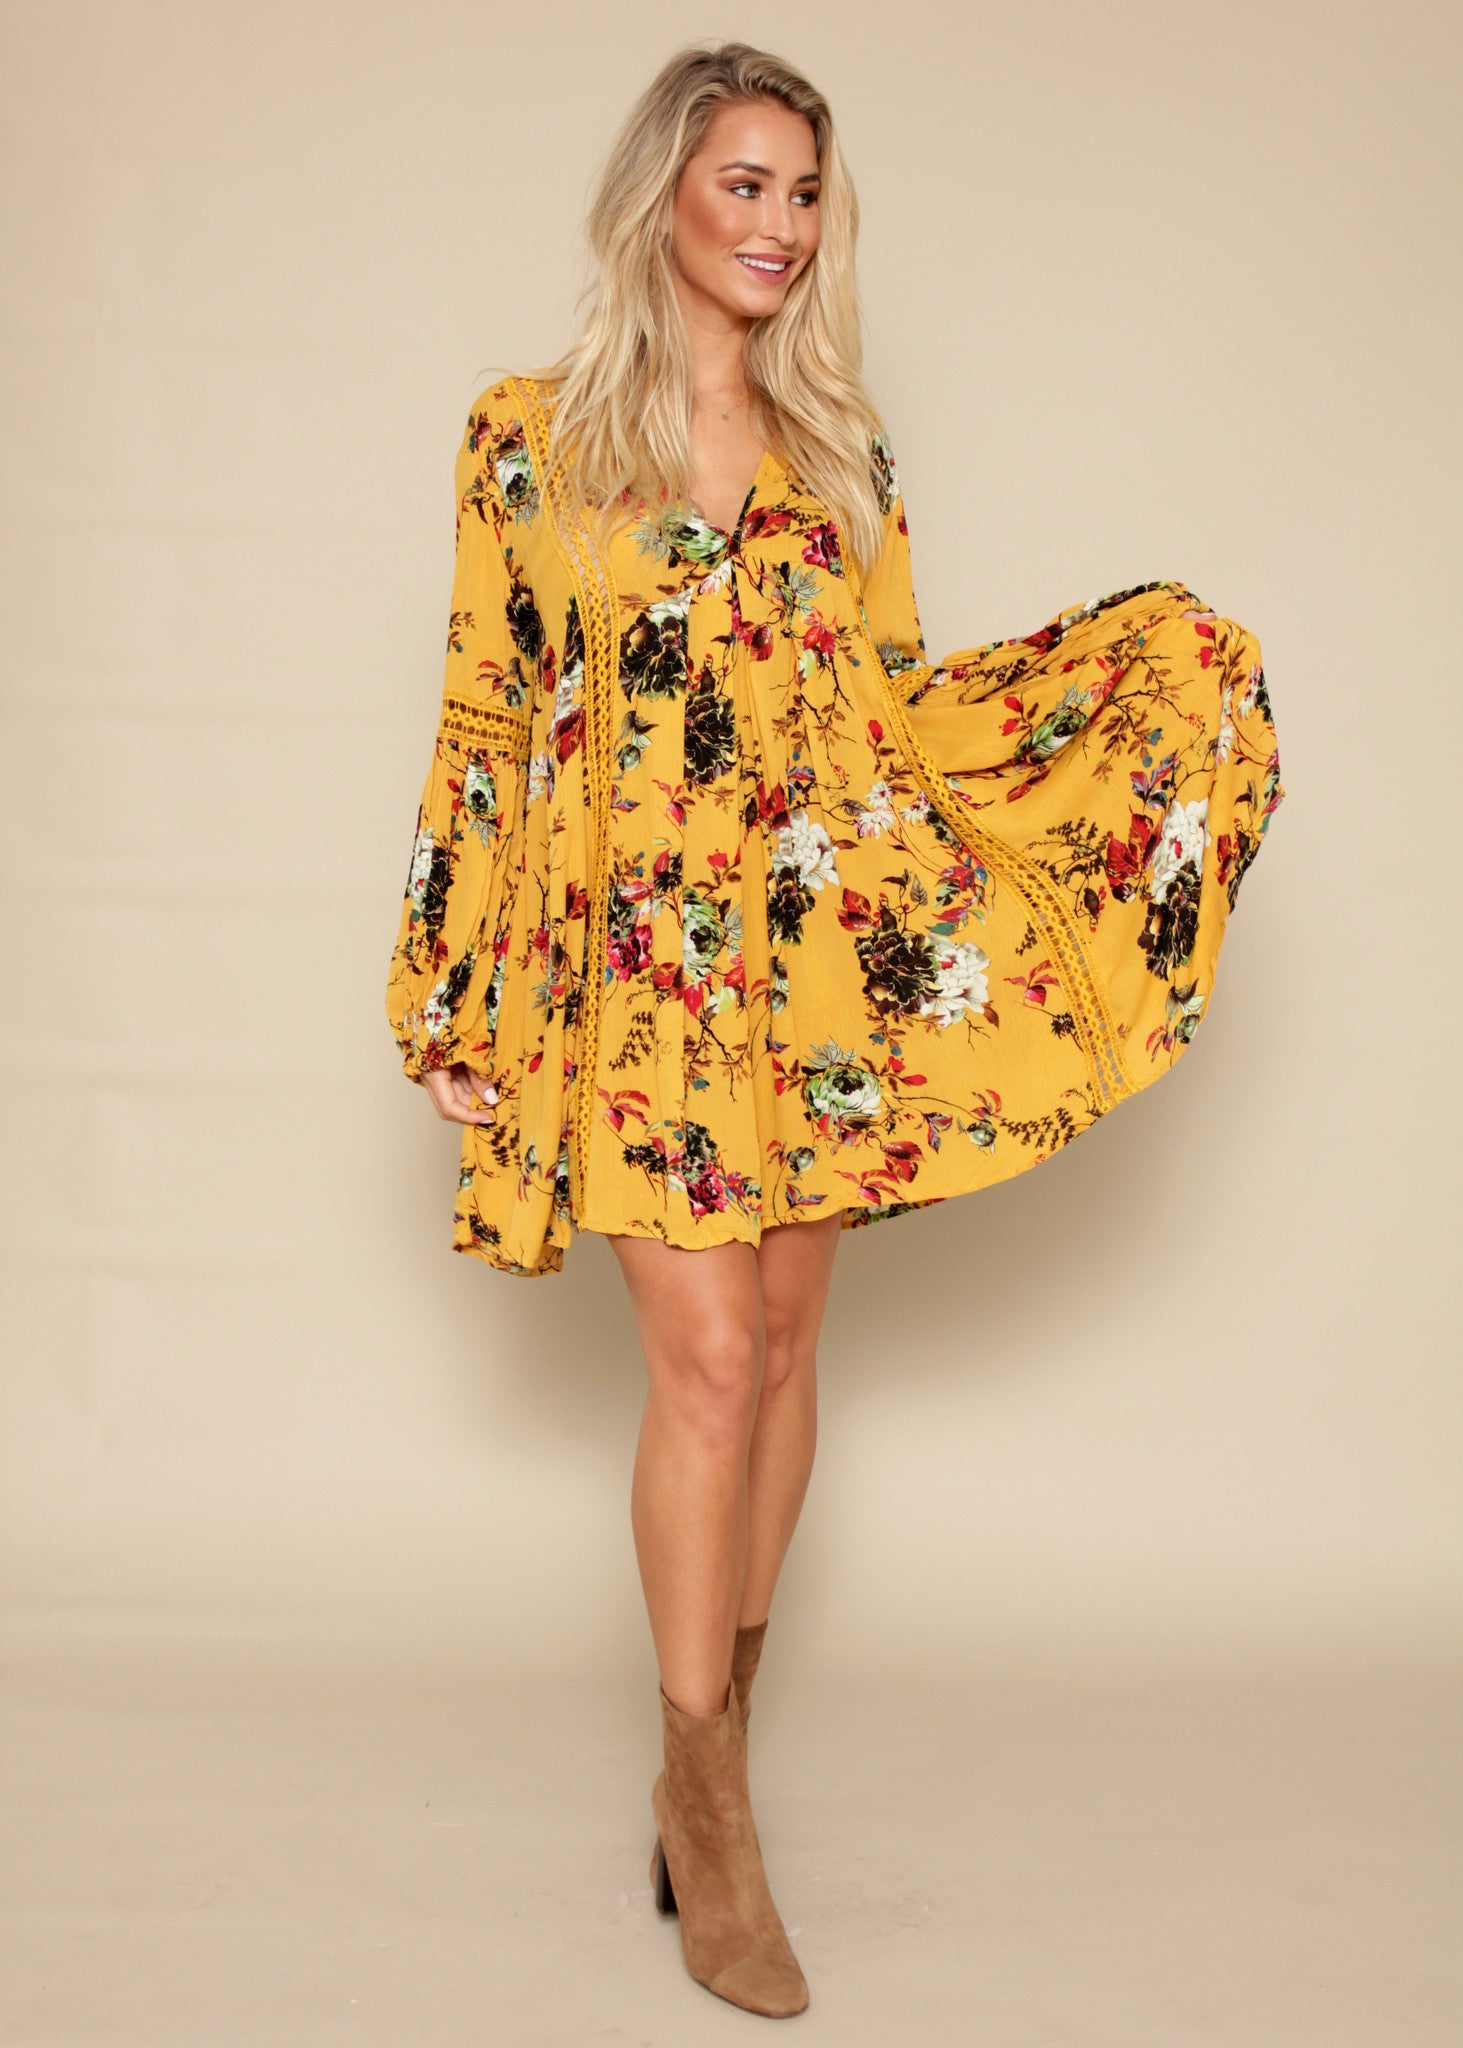 Break The Rules Tunic Dress - Mustard Floral